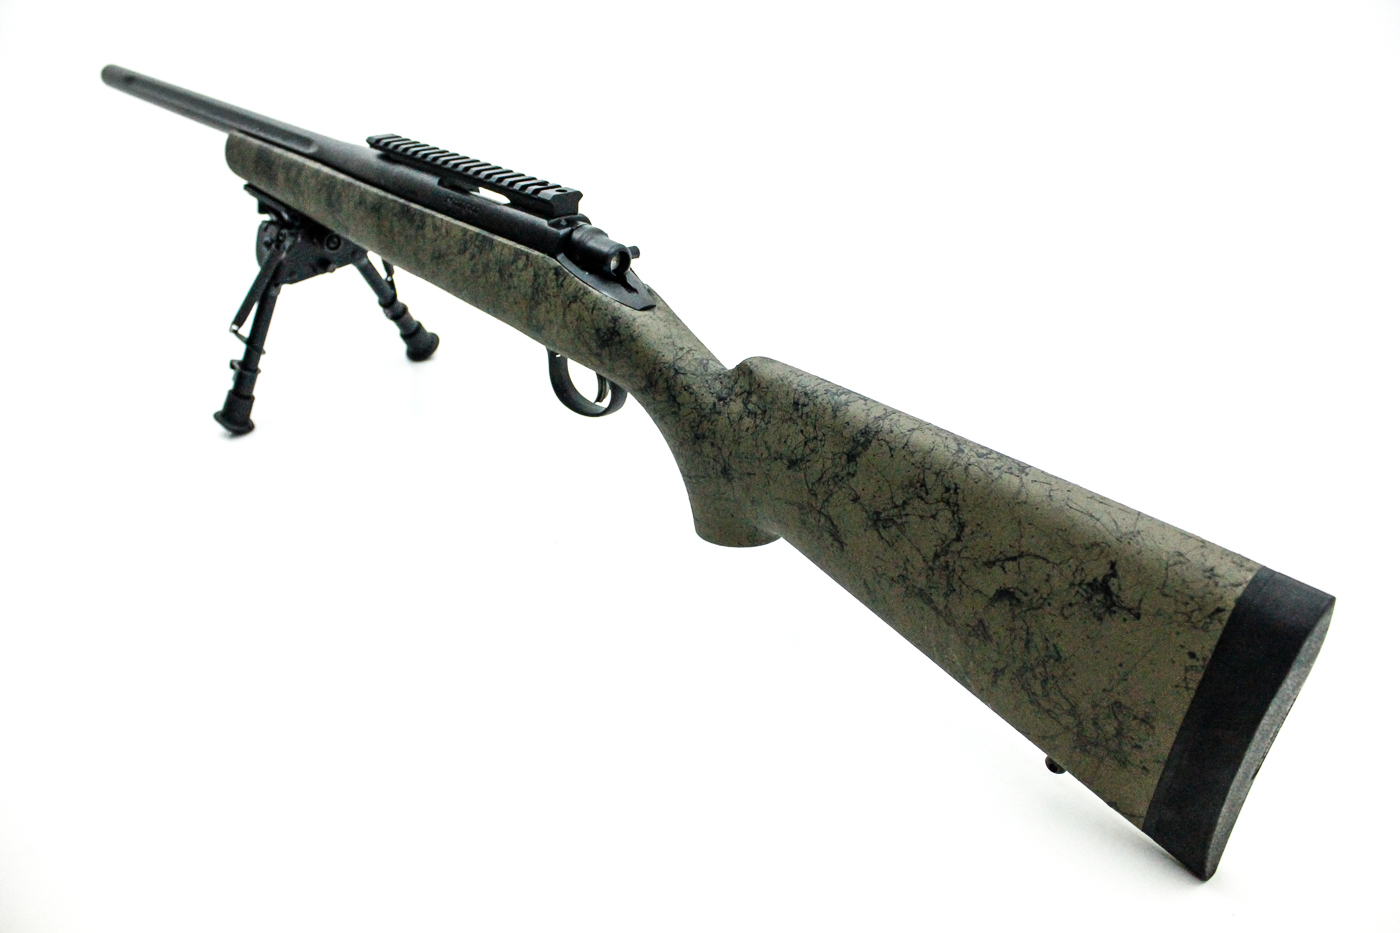 Remington 700 Compact Tactical, .308 Win - Image 7